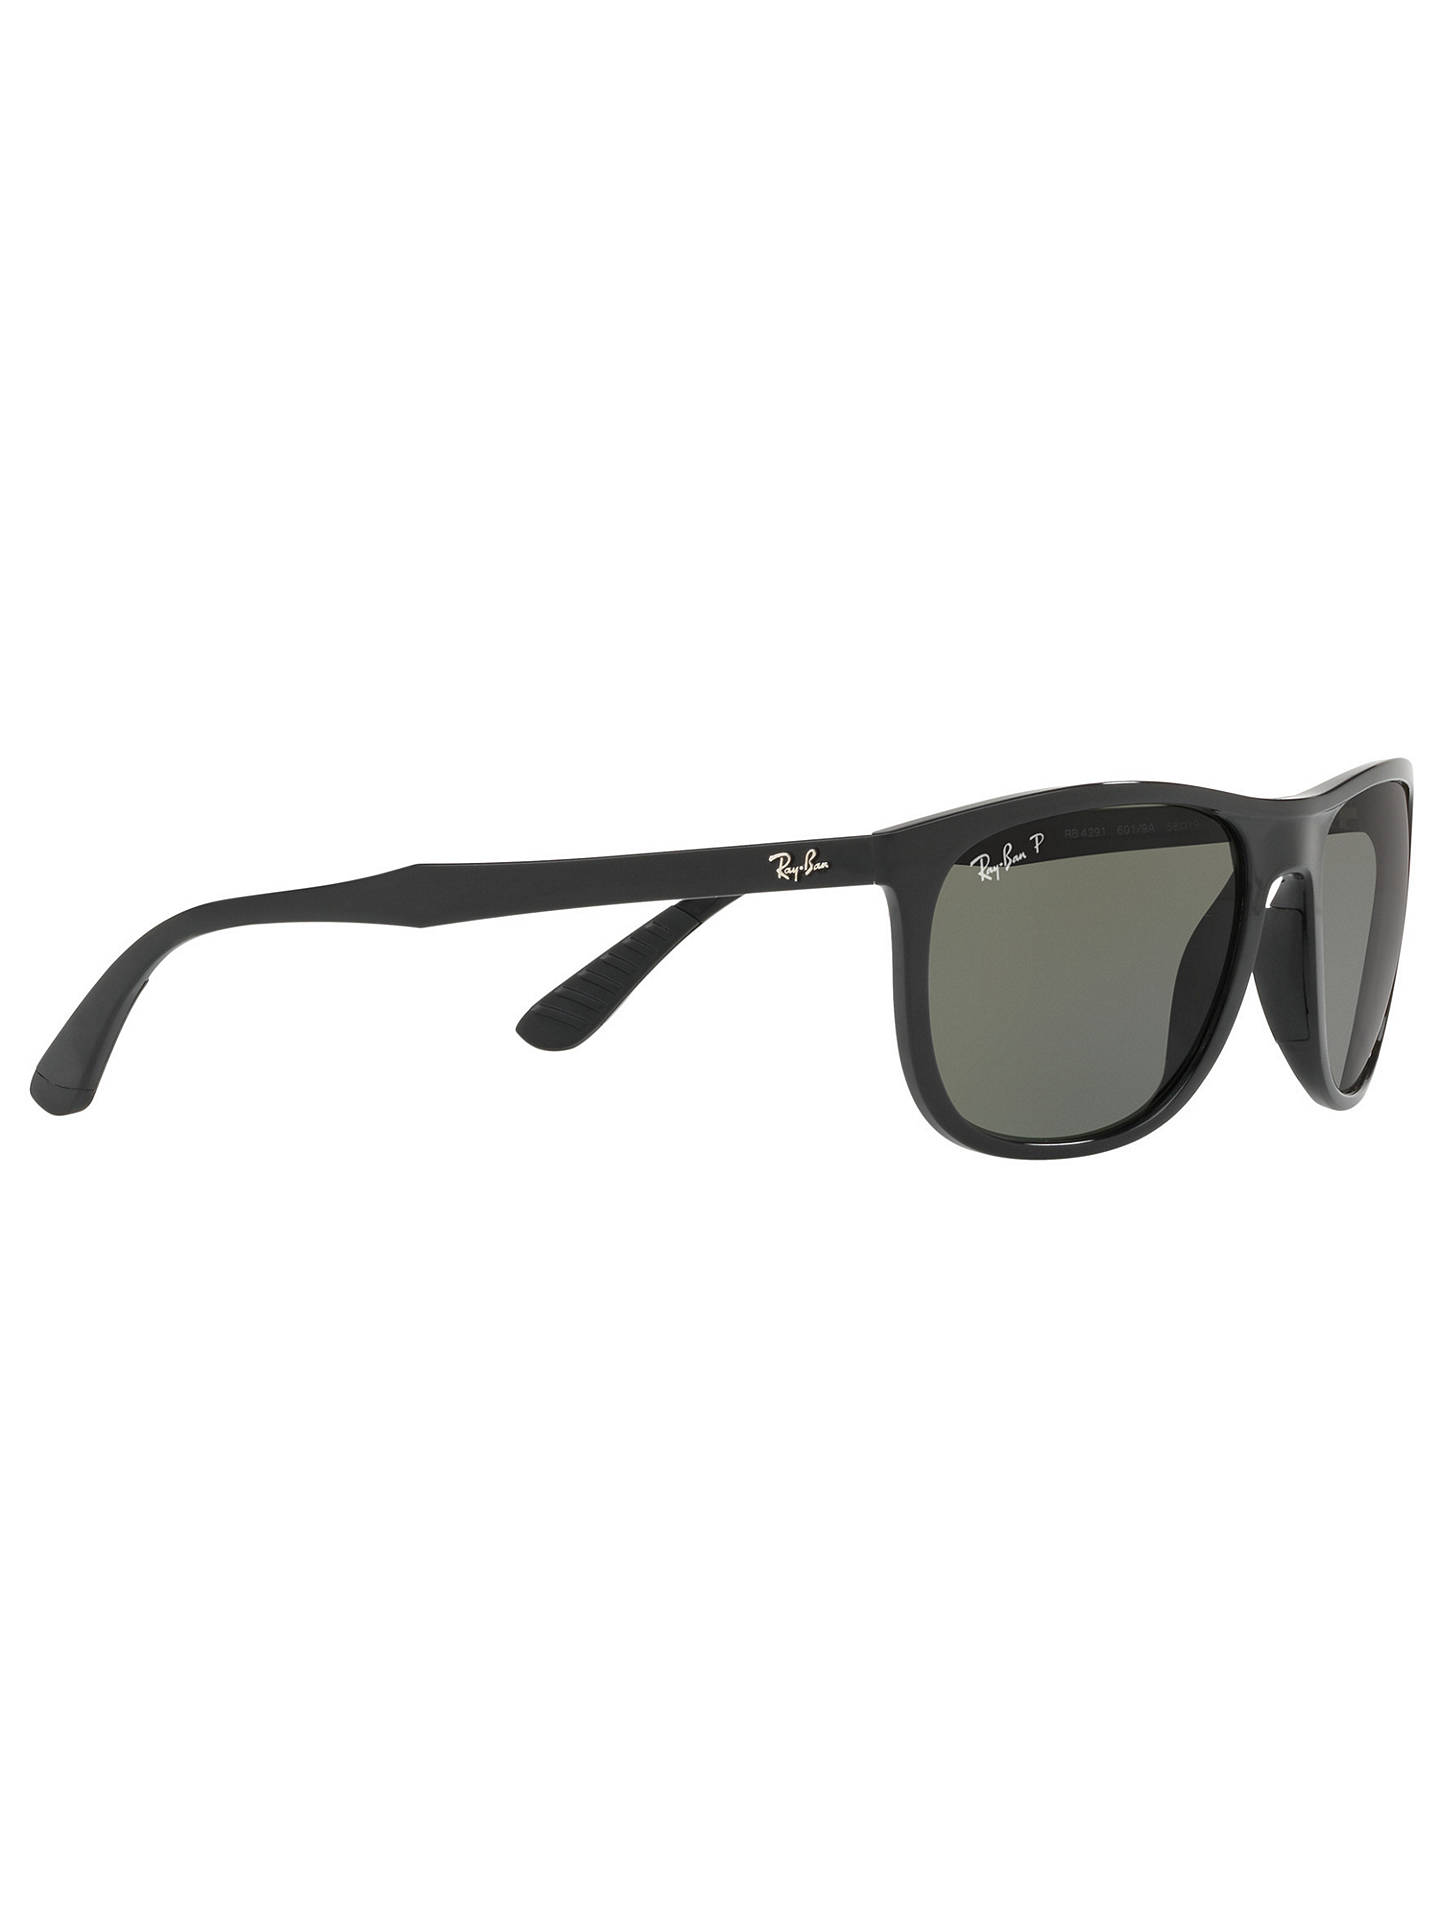 BuyRay-Ban RB4291 Polarised Square Sunglasses, Black/Grey Online at johnlewis.com